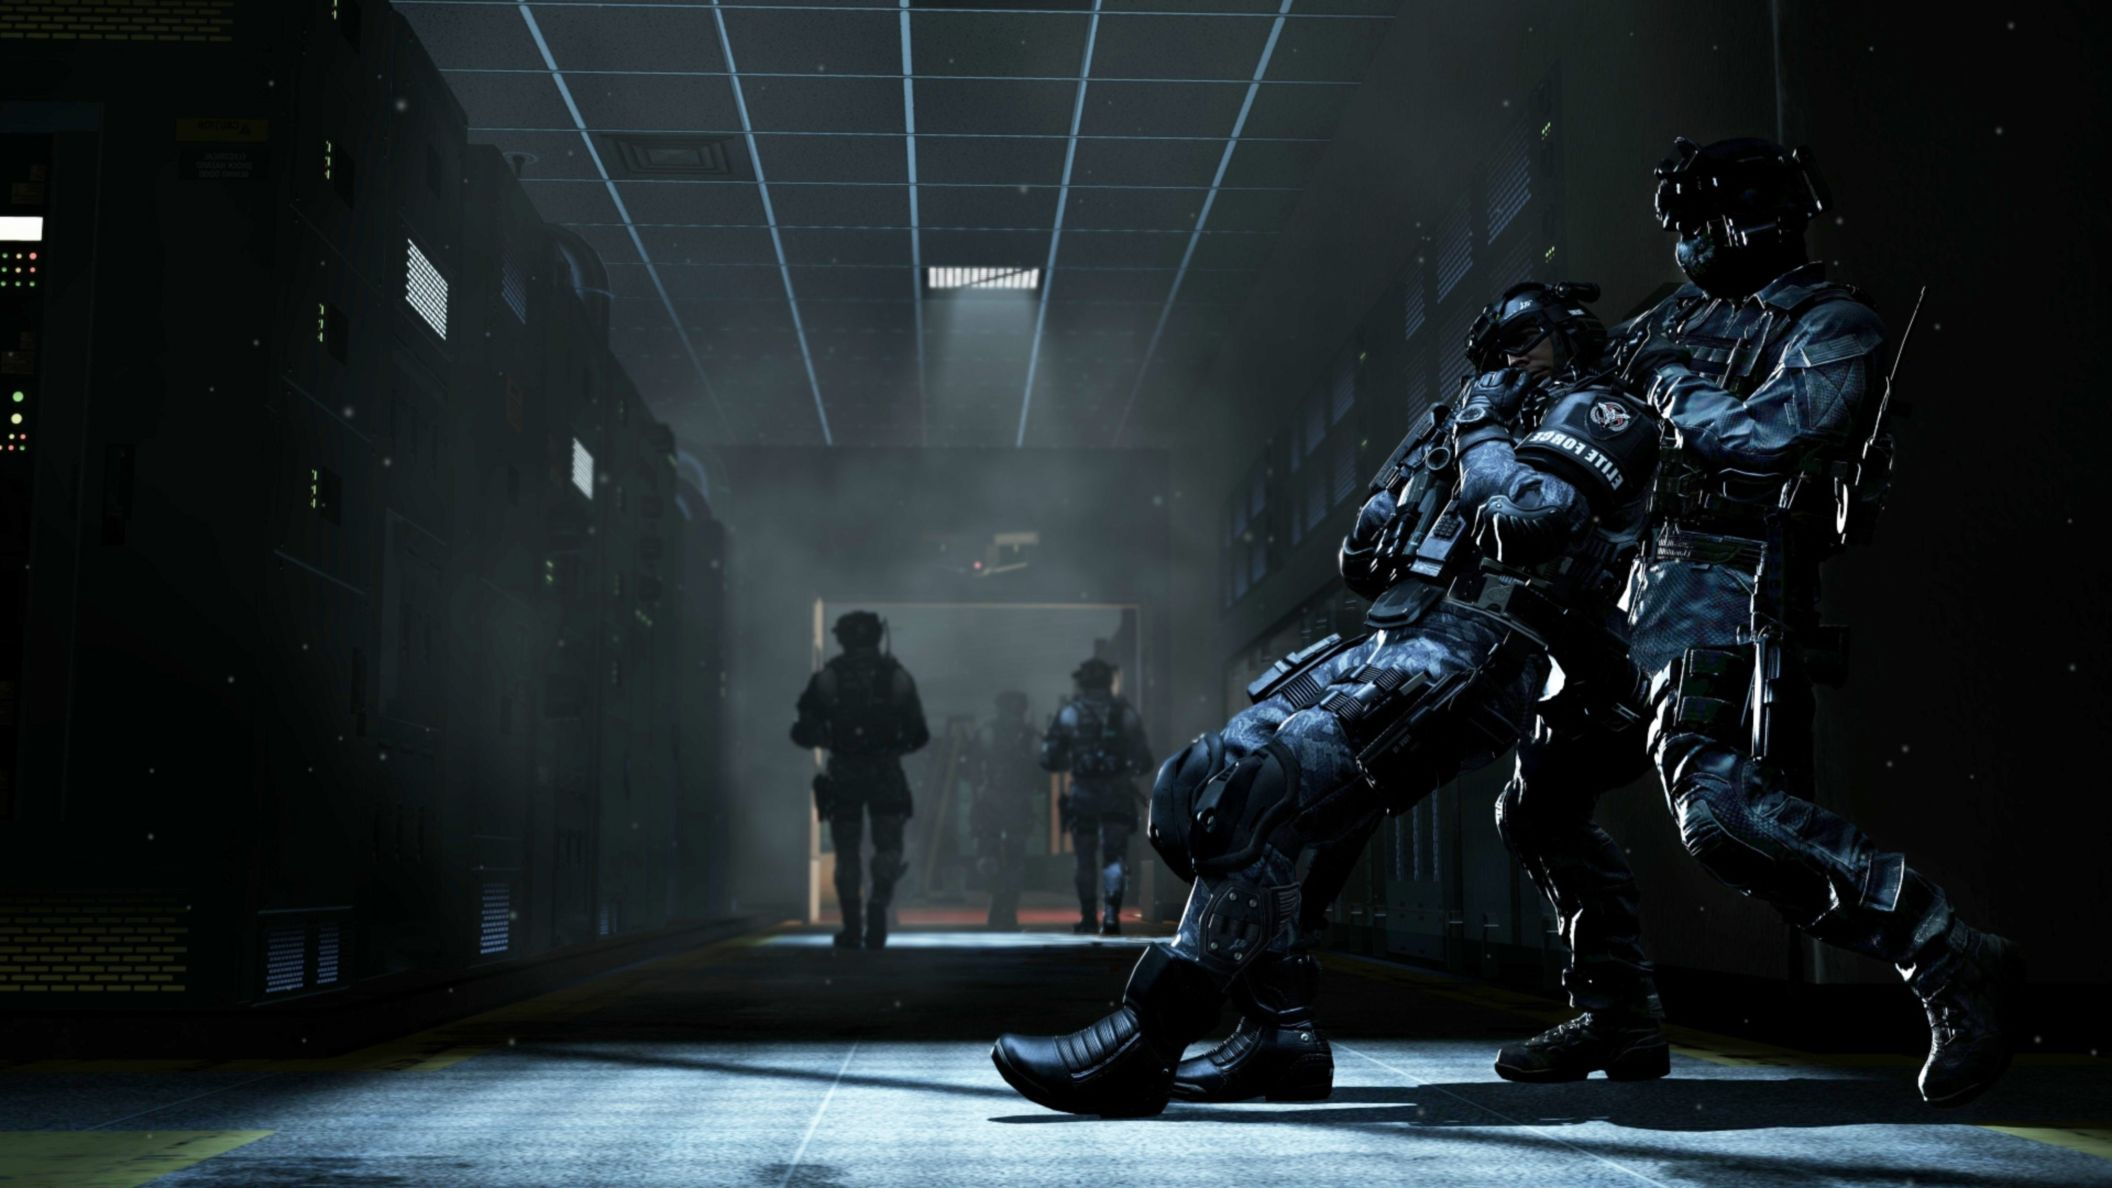 Download free HD Call Of Duty Ghosts Free Download Wallpaper, image